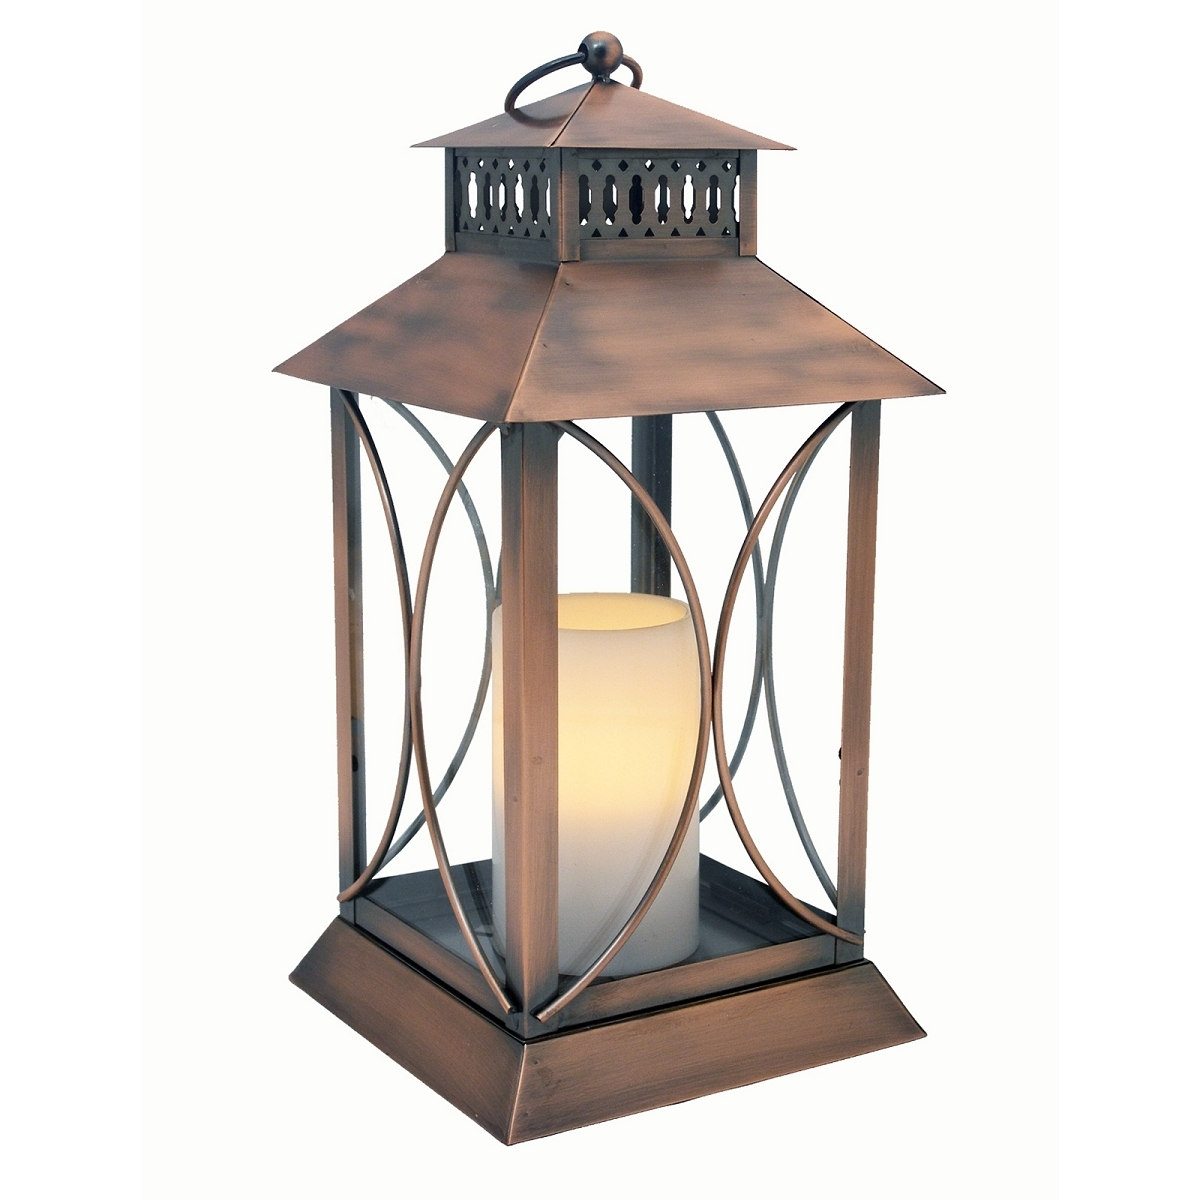 Indoor Outdoor Lanterns With Well Liked Neuporte Flameless Candle Lantern With Timer Indoor Outdoor (Gallery 10 of 20)